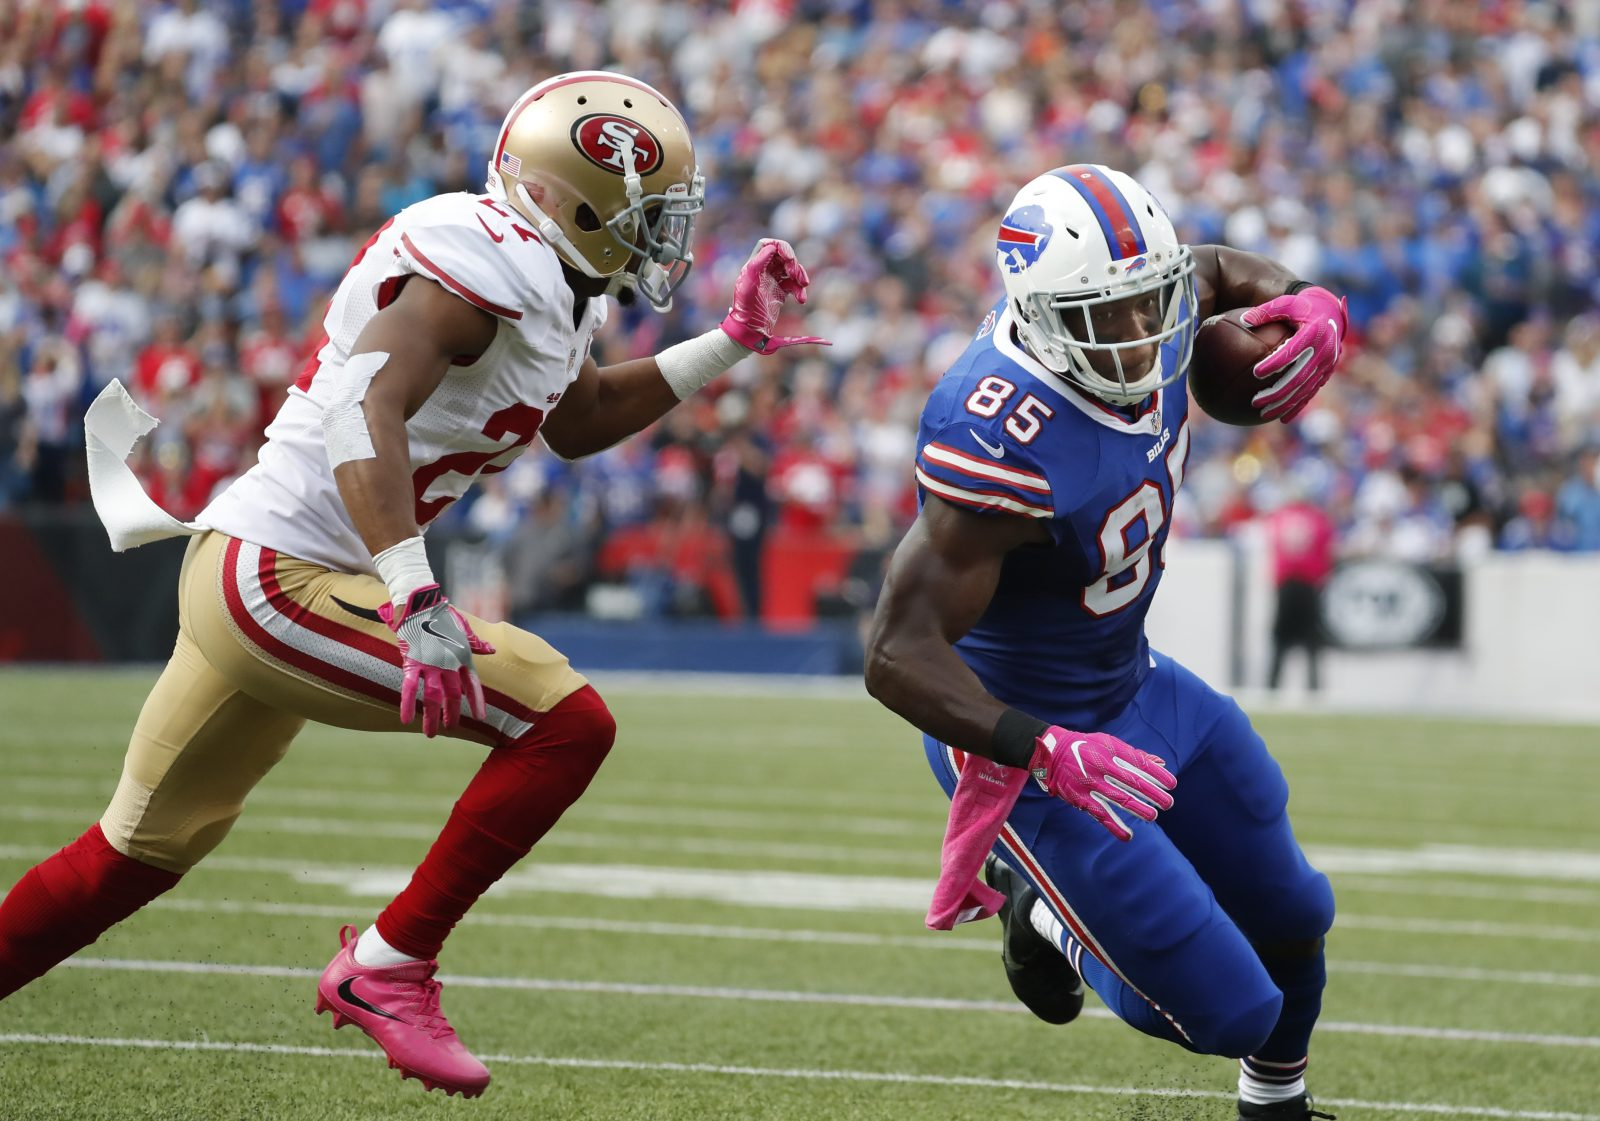 Buffalo Bills tight end Charles Clay (85) puts a move on San Francisco 49ers cornerback Keith Reaser (27) during the first quarter at New Era Field on Sunday. (Harry Scull Jr./Buffalo News)